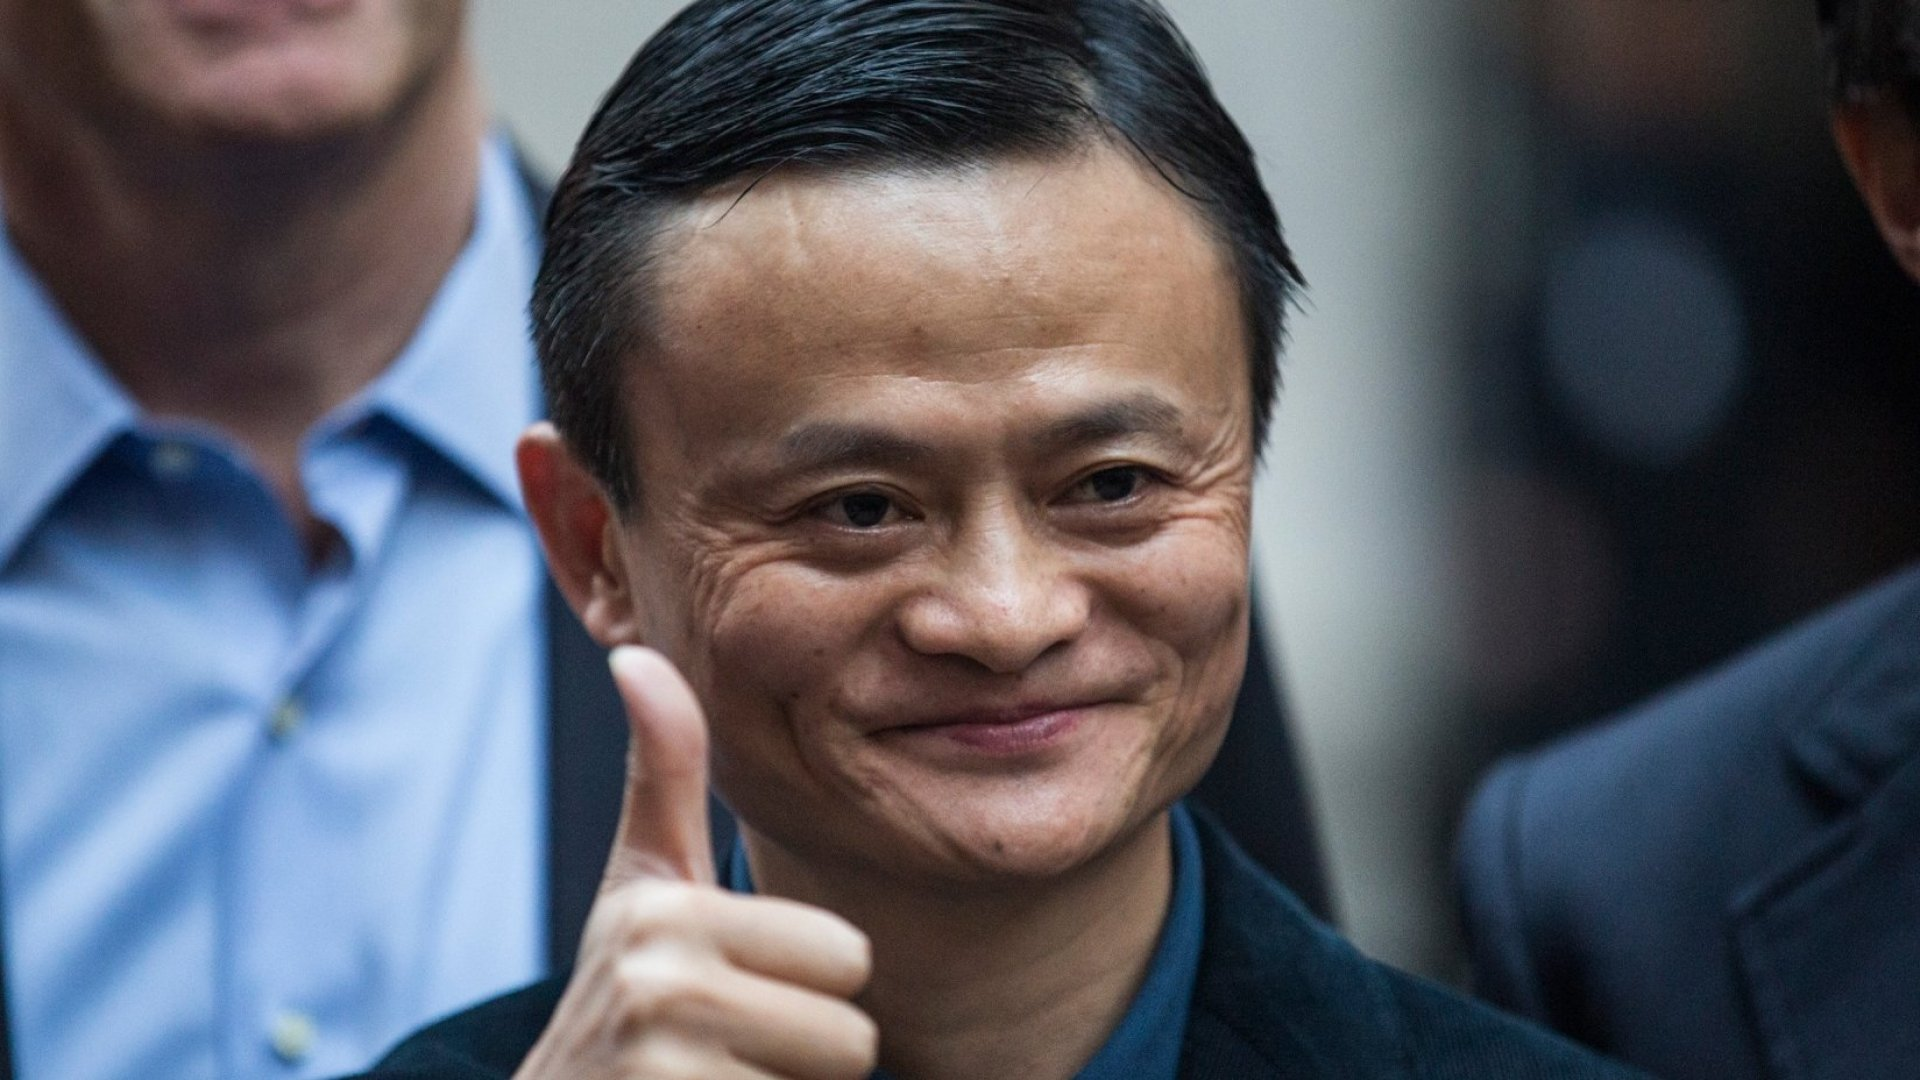 Jack Ma, CEO of the Alibaba Group.